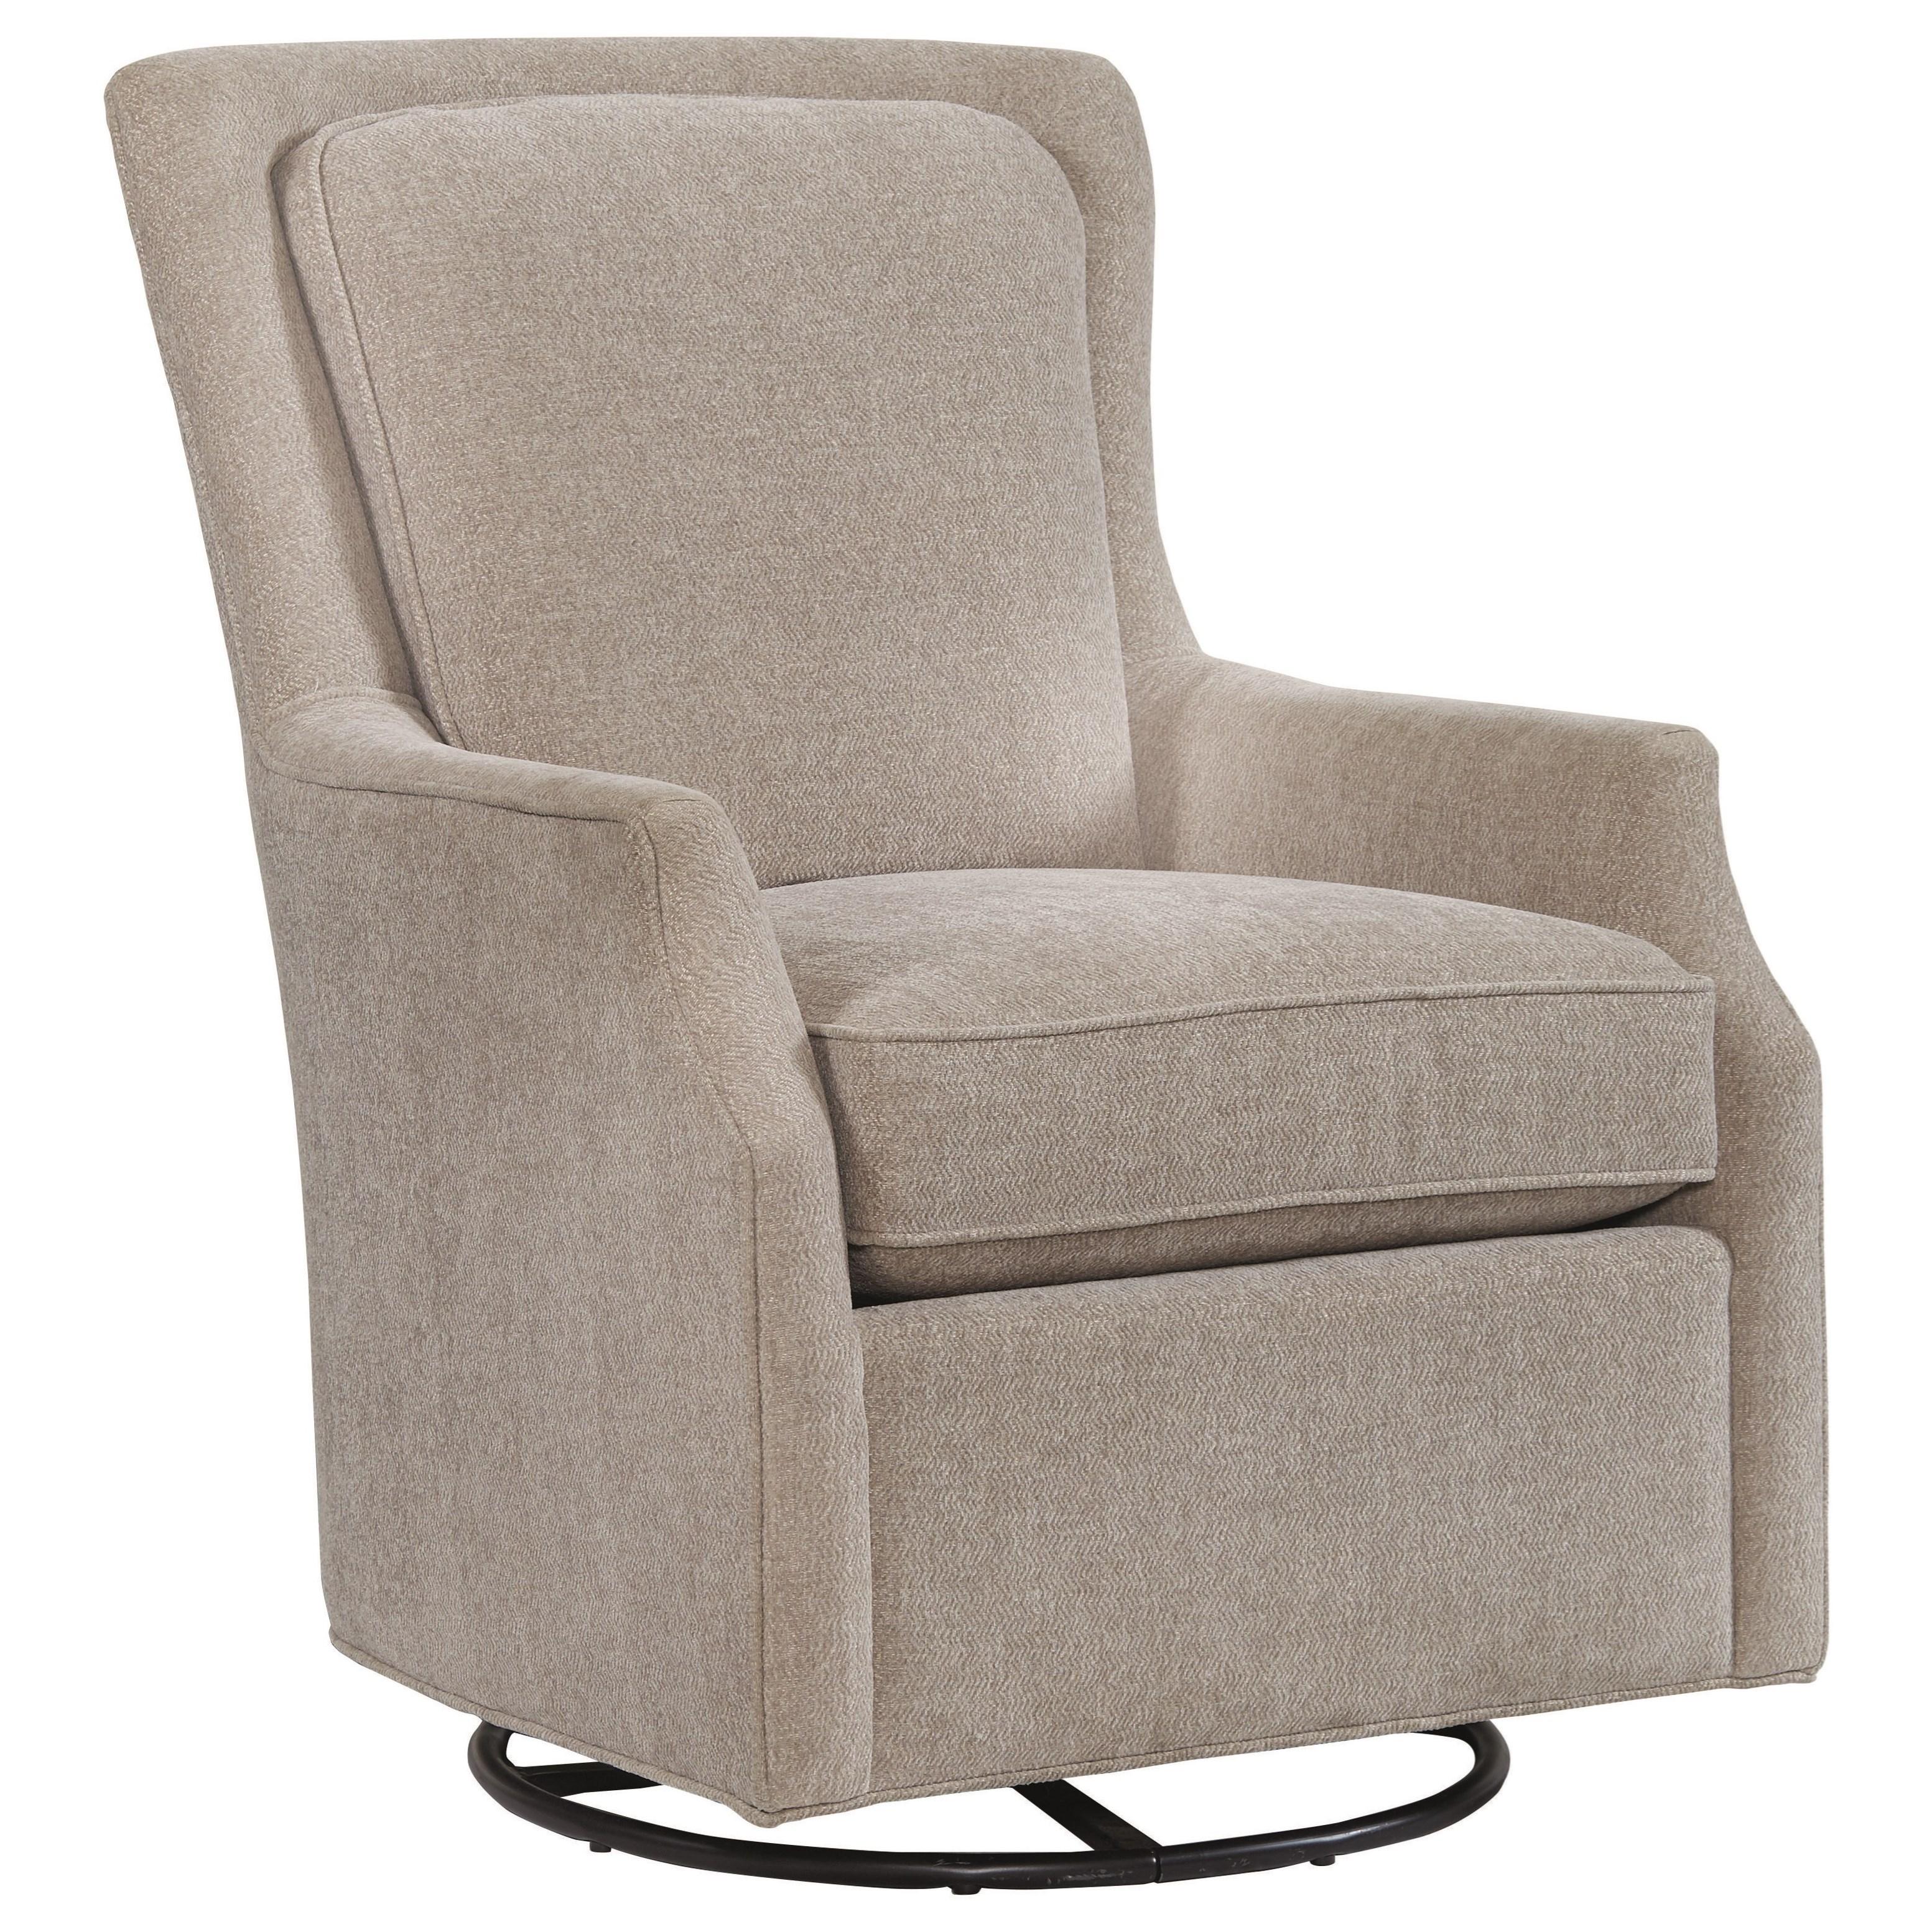 Kent Accent Swivel Glider Chair